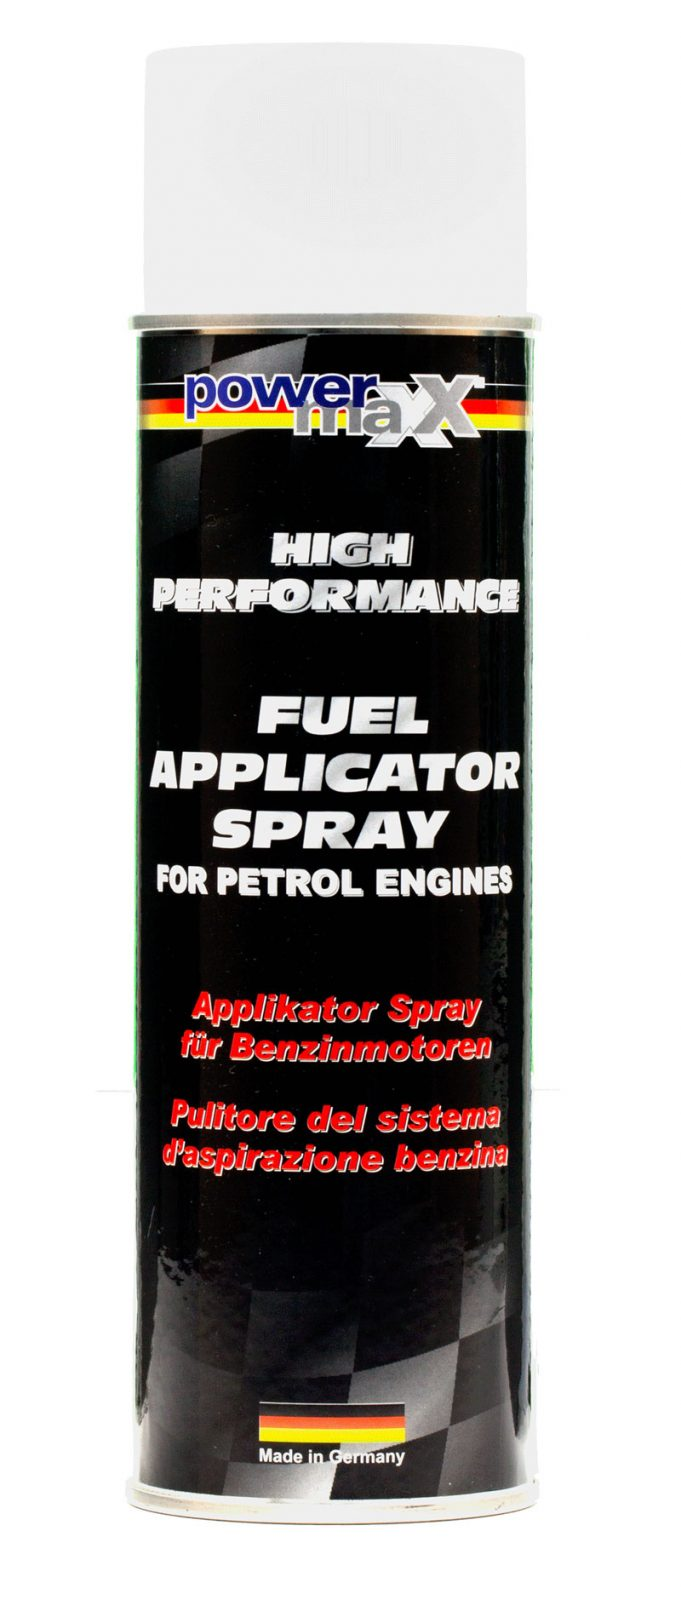 Fuel-Applicator-Spray-500ml